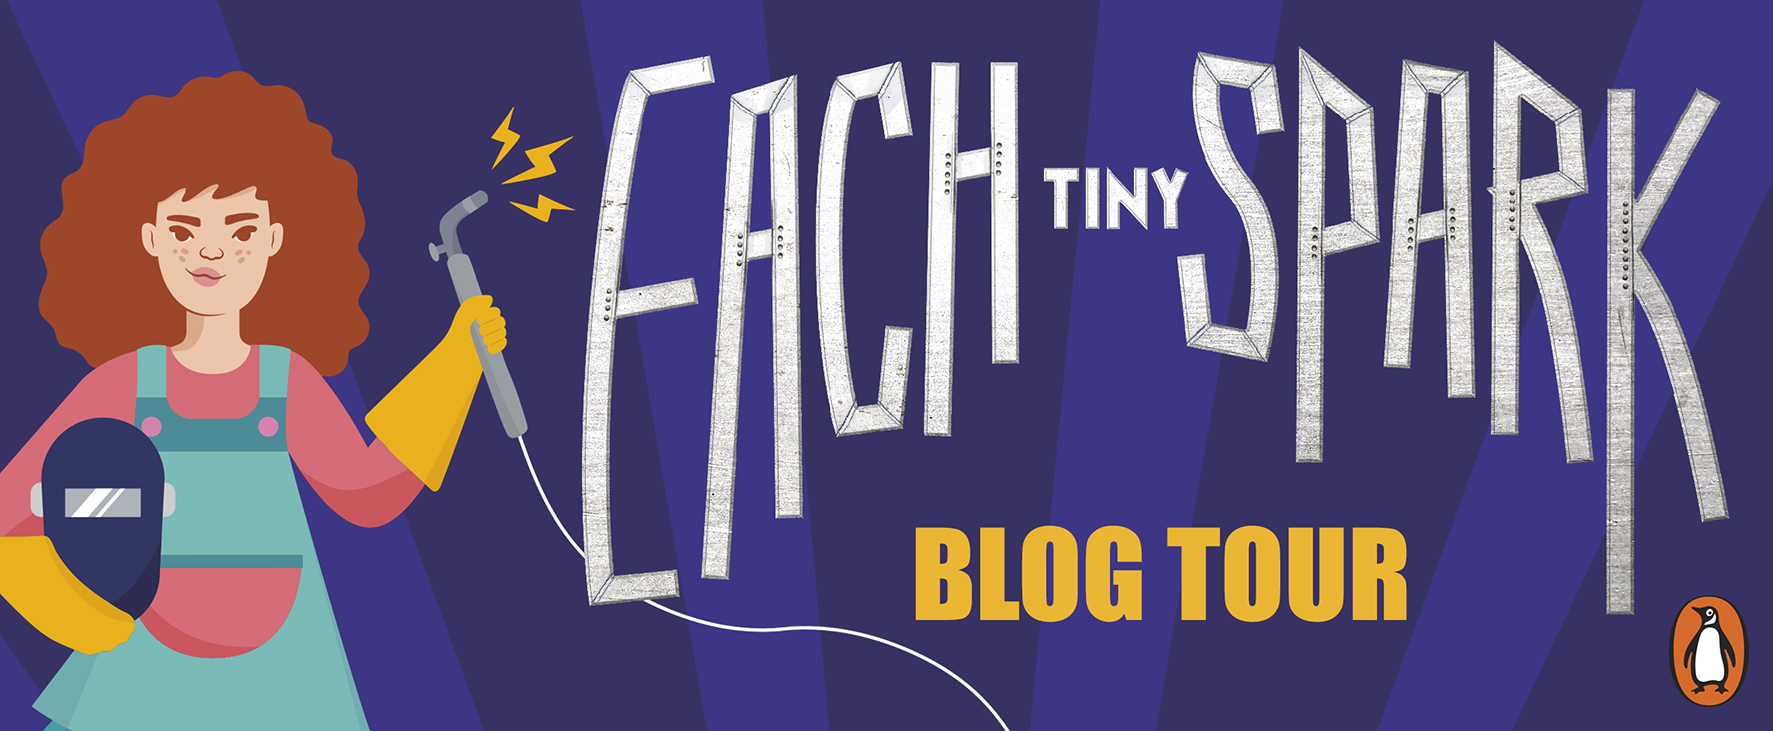 A banner for the Each Tiny Spark Blog Tour, with that text, and the Penguin logo in the bottom right hand corner. The image on the left shows a girl with light skin and curly red hair, wearing a pink shirt and green coveralls and yellow gloves, holding a welding helmet and a welder. There are small lightning bolts coming out of the welder.